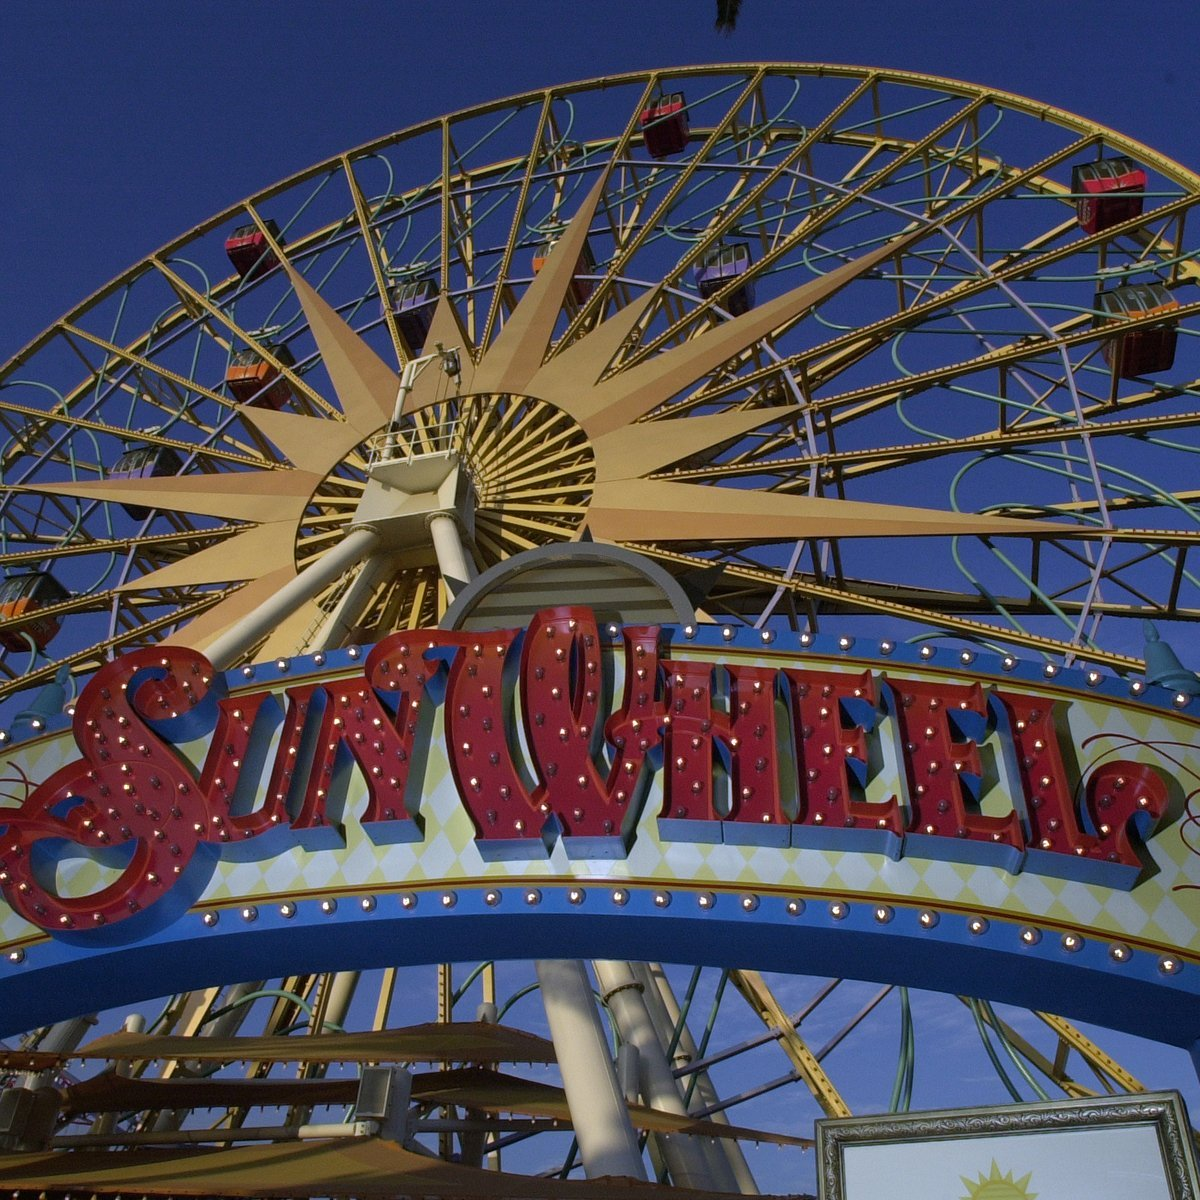 Slide 13 of 19: Disneyland's sister park, California Adventure, made its debut on February 8, 2001. Since then, the park has undergone several transformations—including a rebranding of the Sun Wheel seen here to Mickey's Fun Wheel in 2009.